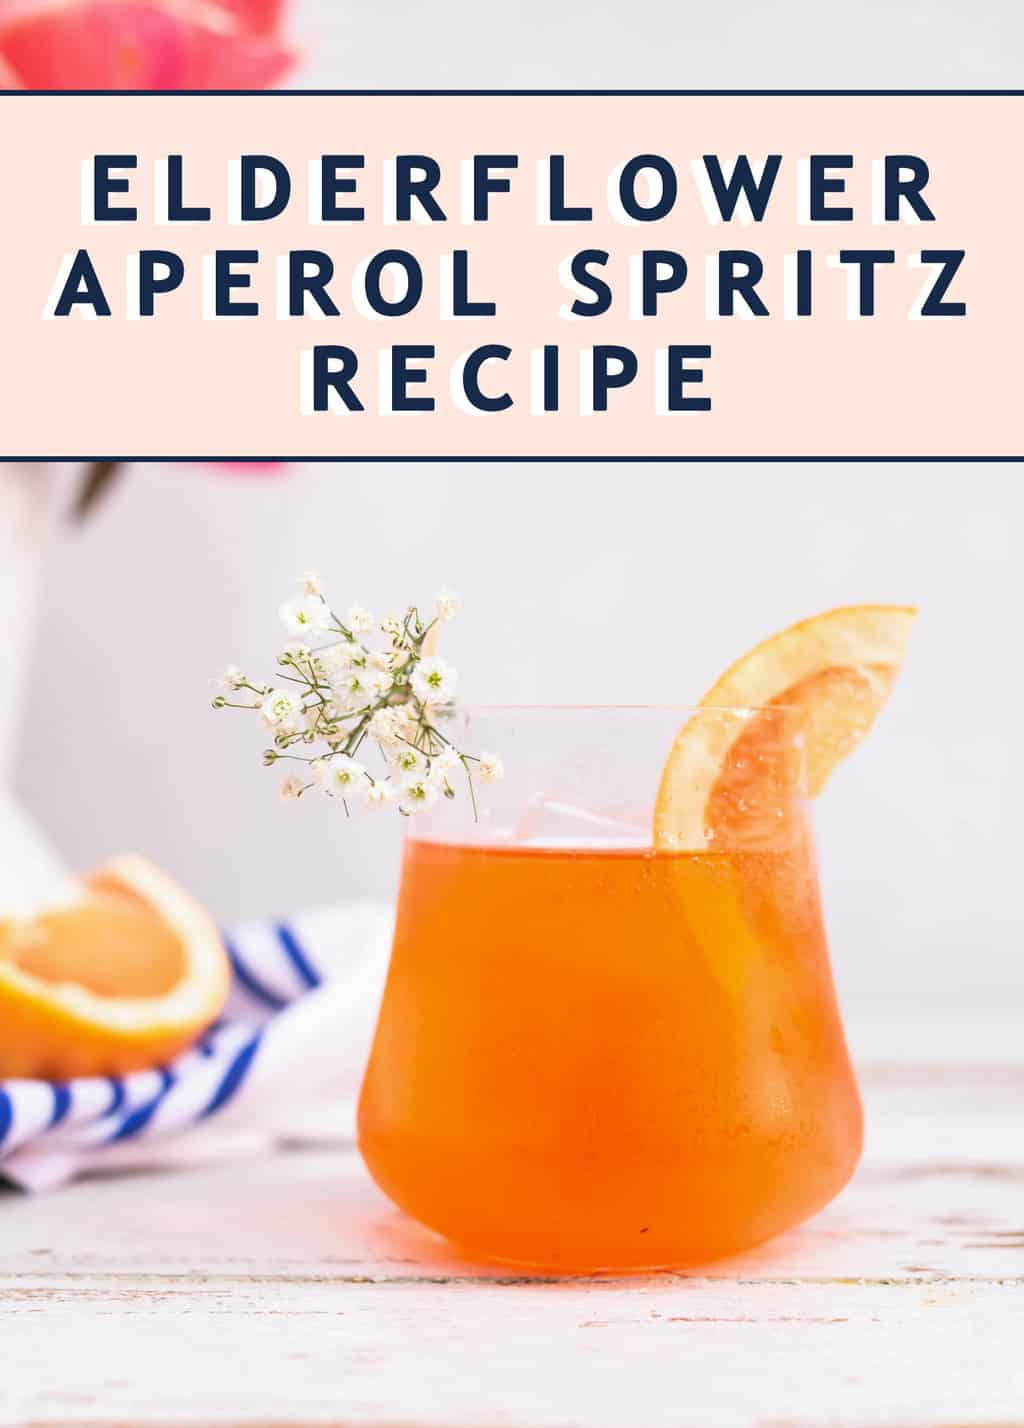 photo of the Elderflower Aperol Spritz cocktail recipe card by top Houston lifestyle blogger Ashley Rose of Sugar & Cloth